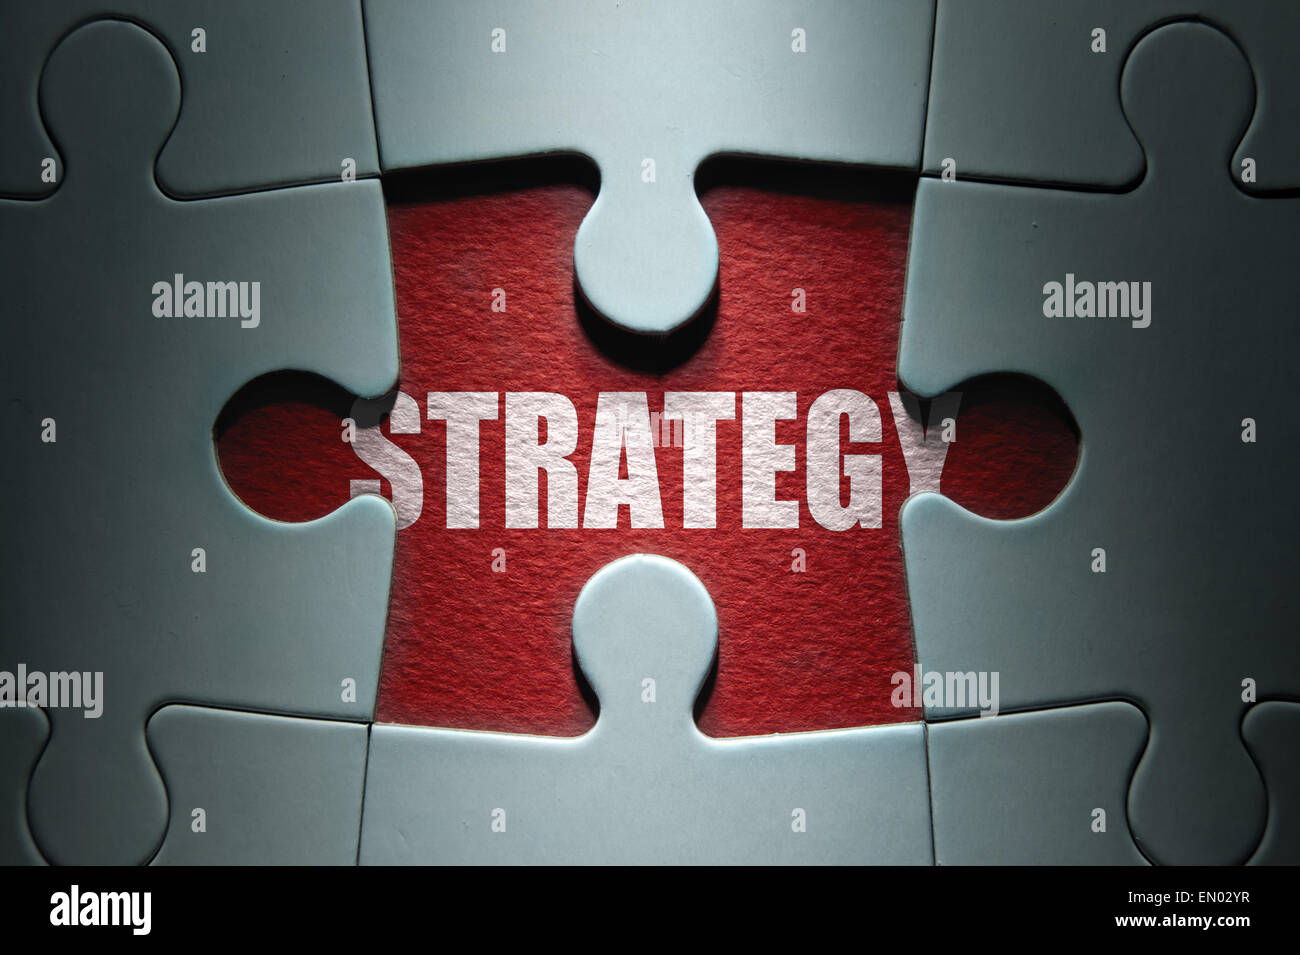 Missing piece from a jigsaw puzzle revealing the word strategy - Stock Image